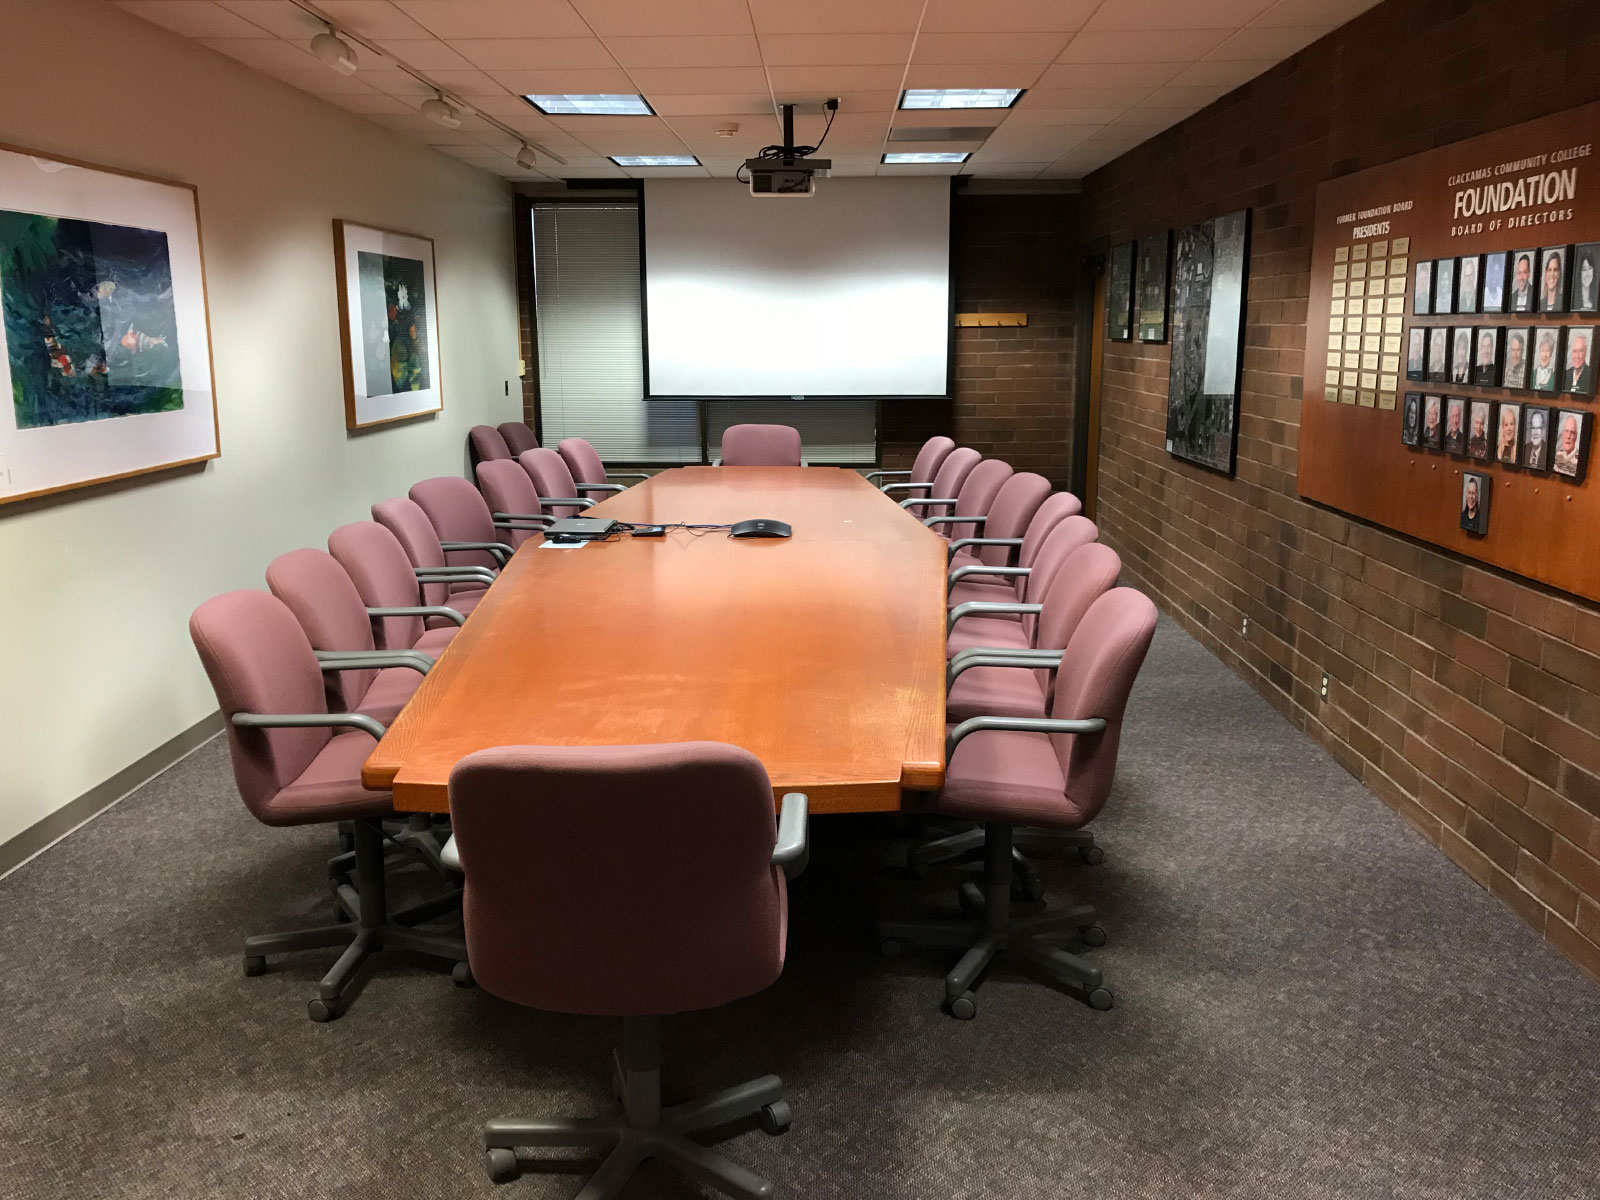 A long, skinny table with many chairs in front of a projector, surrounded by paintings and awards, in a conference room at the Oregon City campus